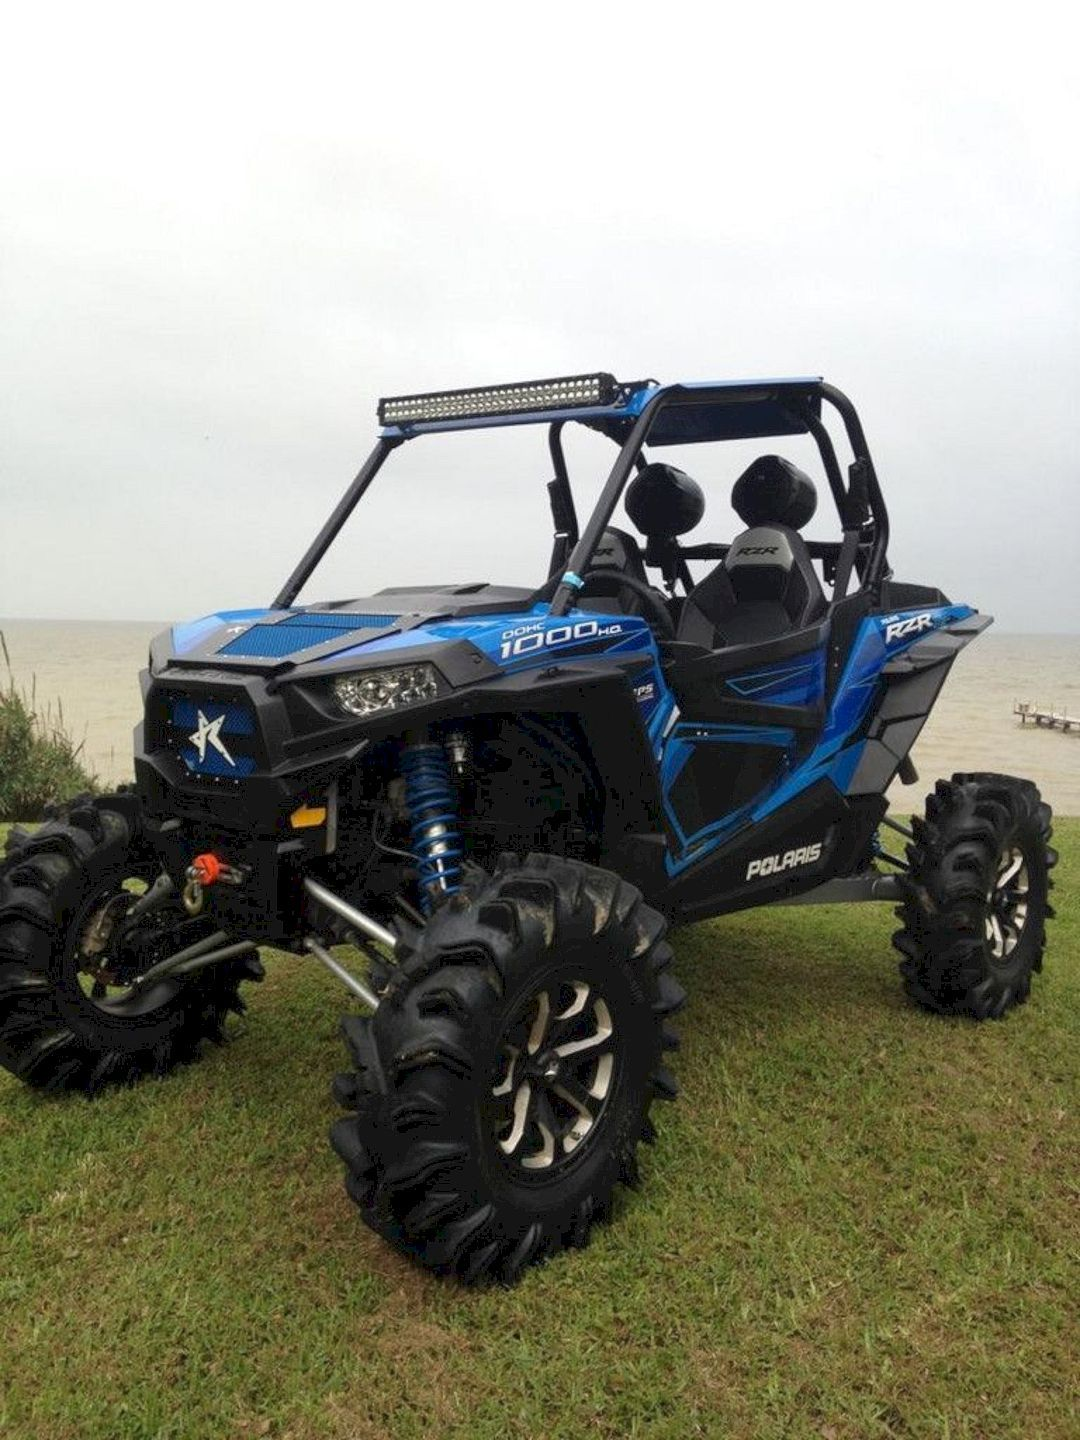 Tjd track kits can am commander with soft enclosure up north pinterest atv offroad and 4x4